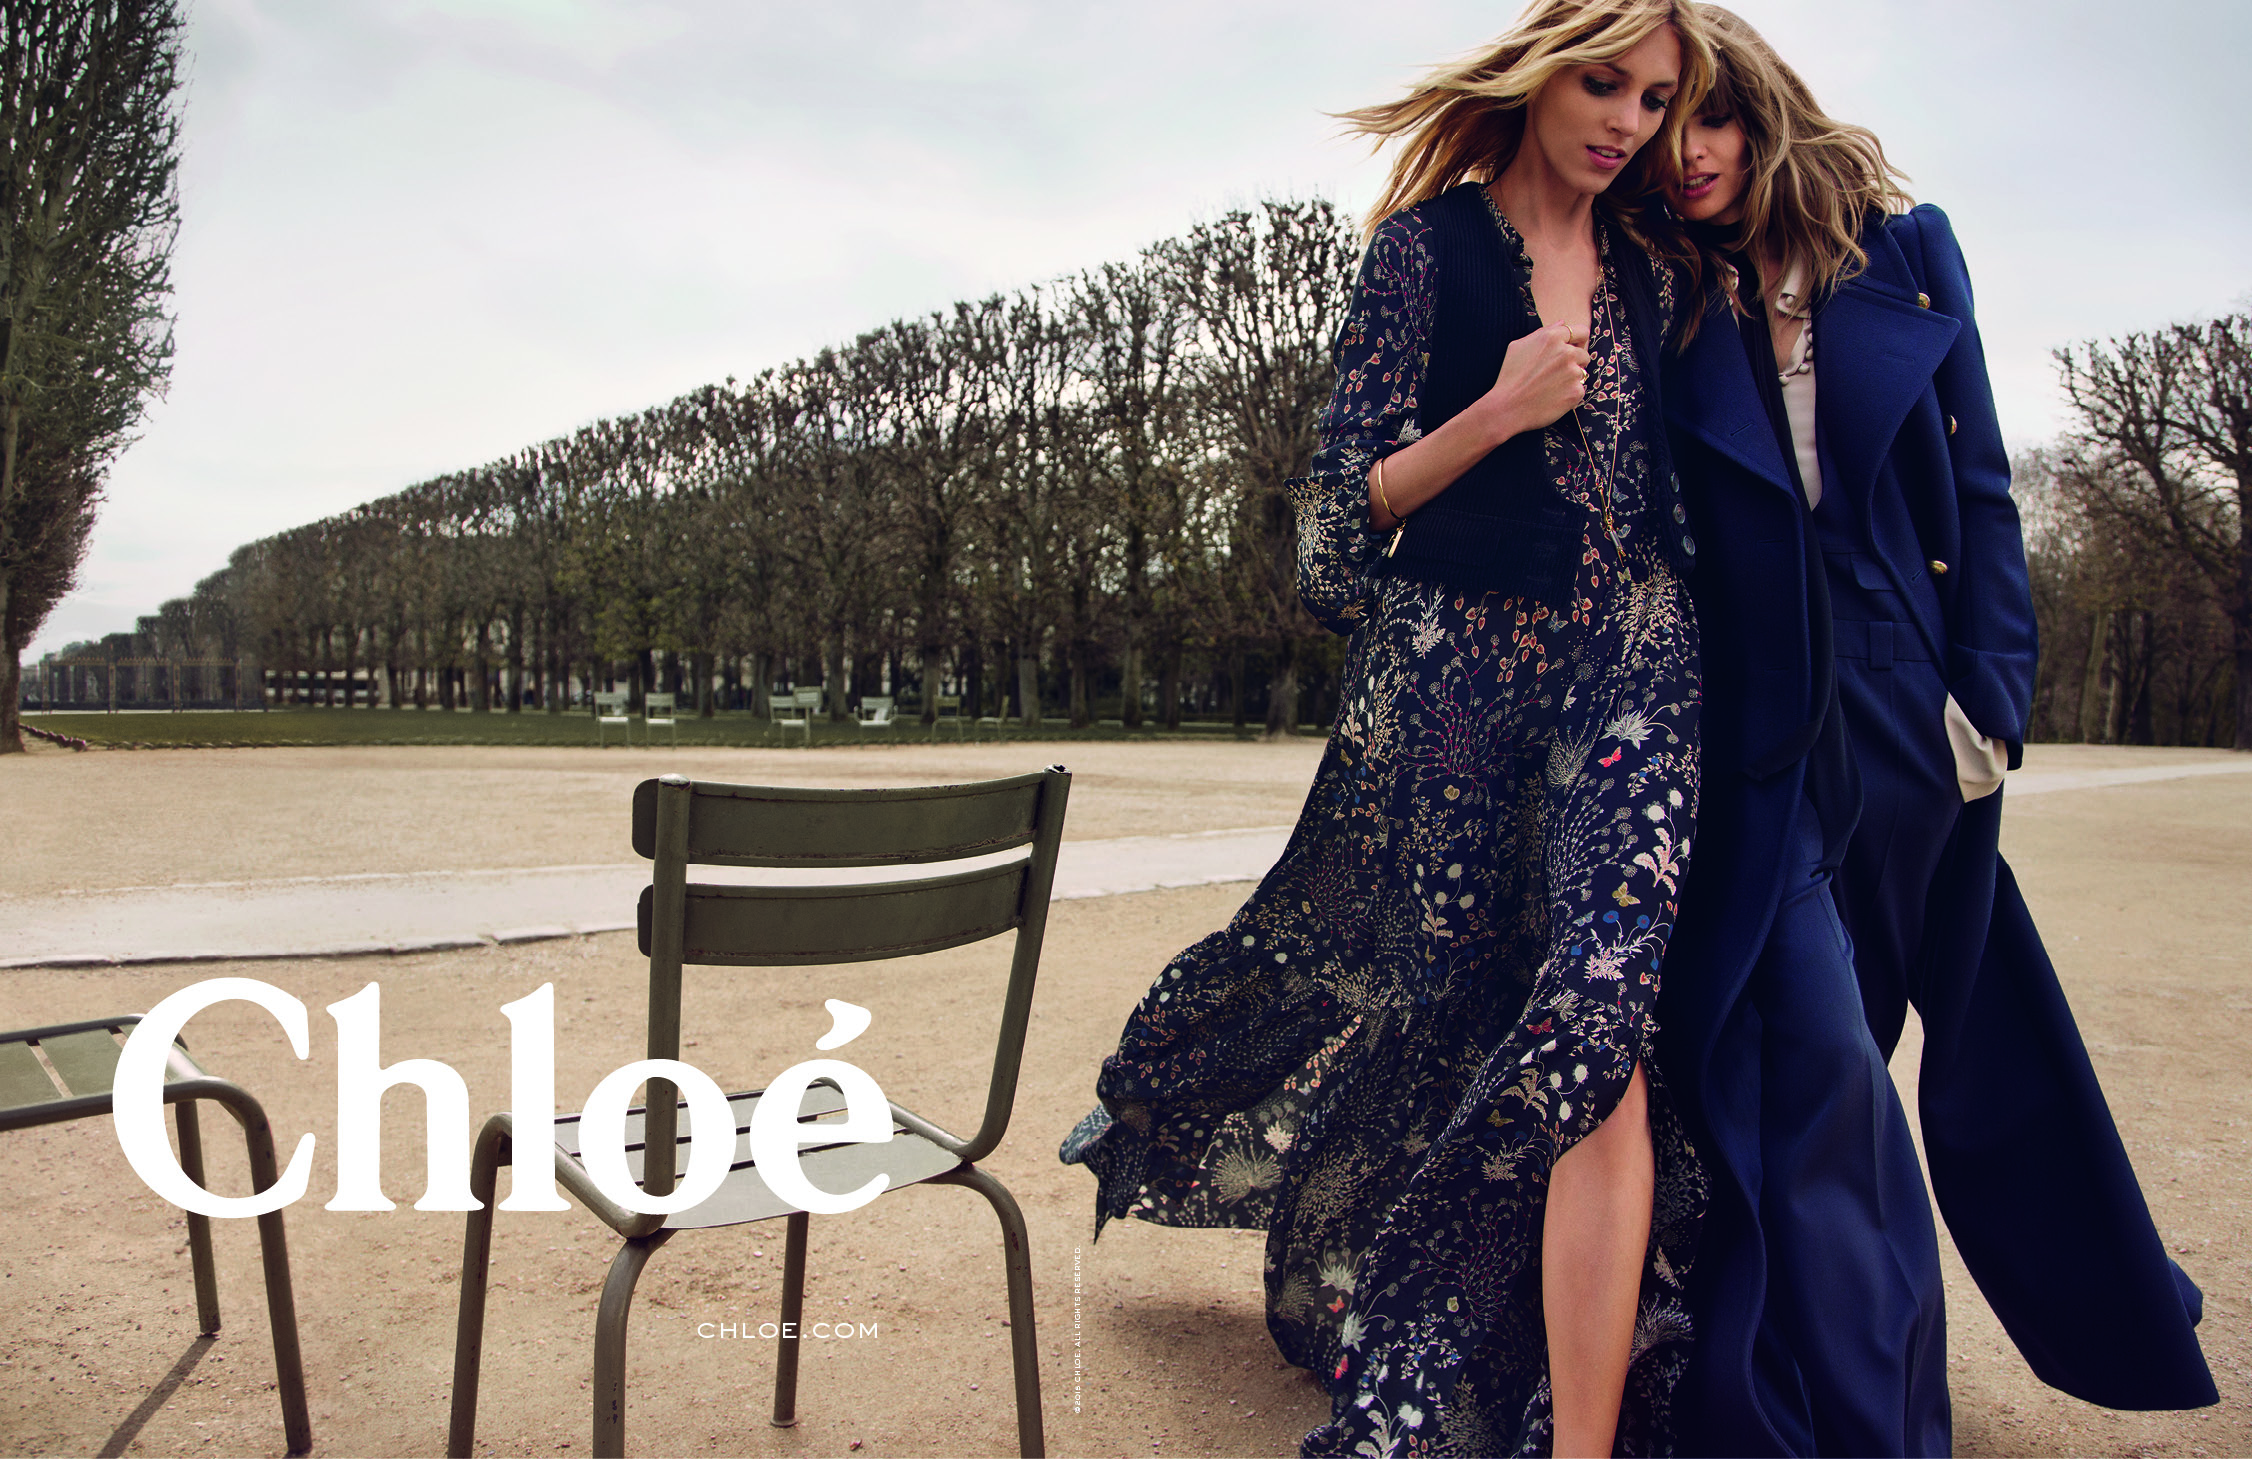 Chlo debuts fall 2015 ad campaign with anja rubik and julia stenger daily front row Fashion style girl hiver 2015